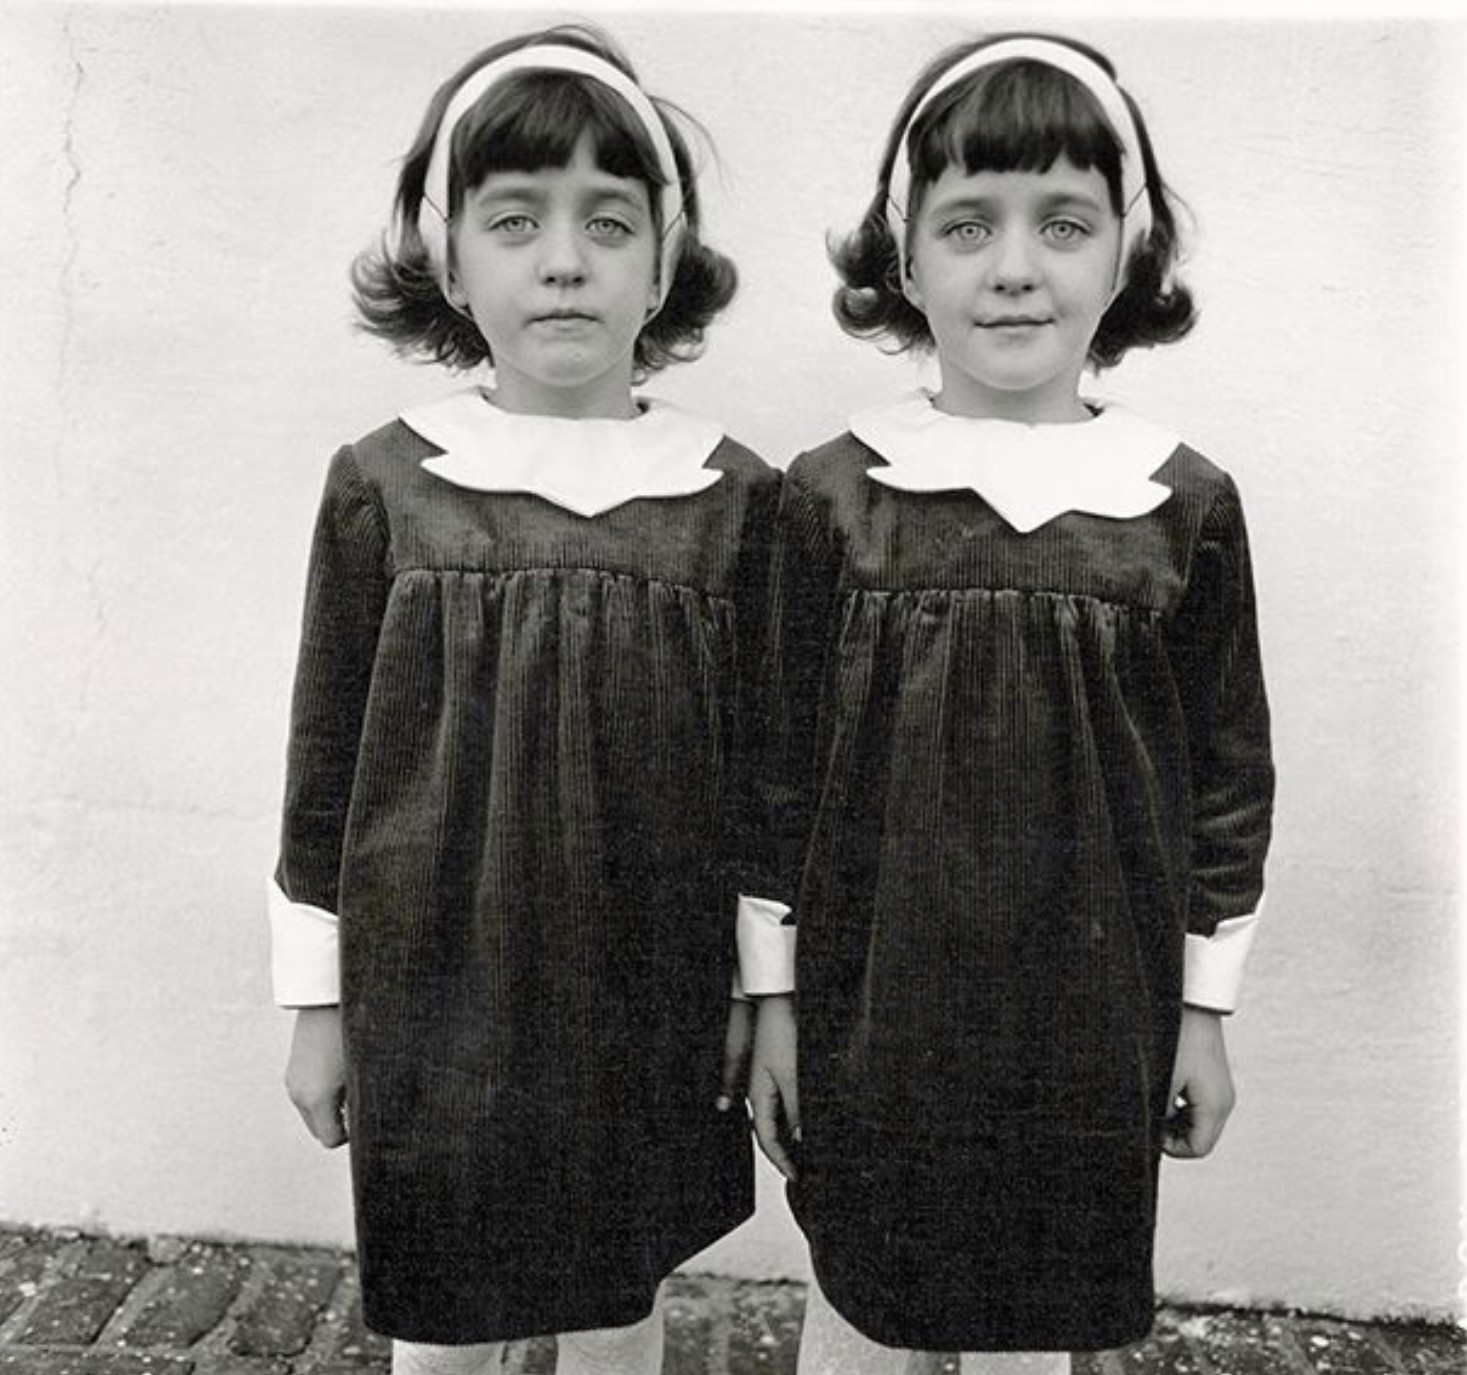 Iconic Identical Twins by Diane Arbus